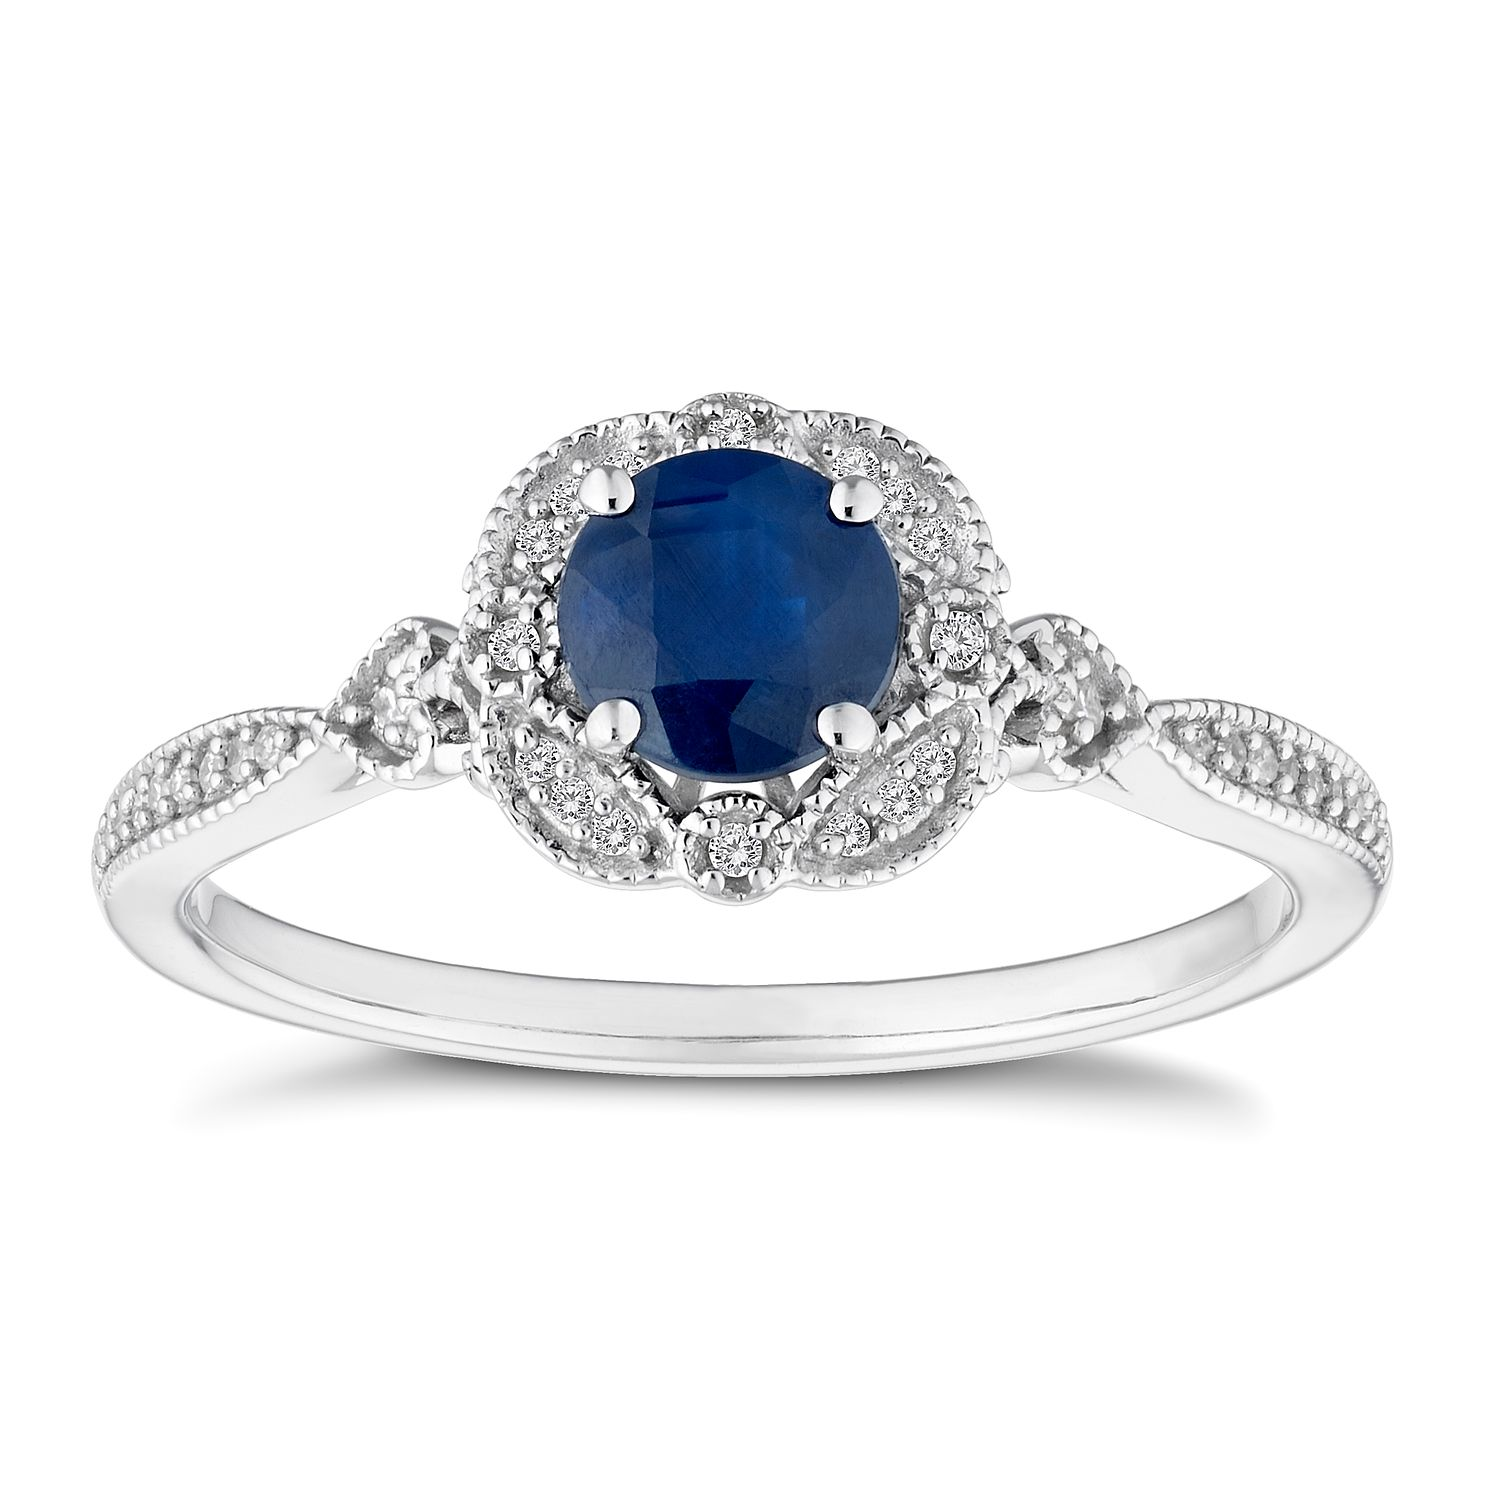 9ct White Gold Sapphire & Diamond Ring - Product number 4654919